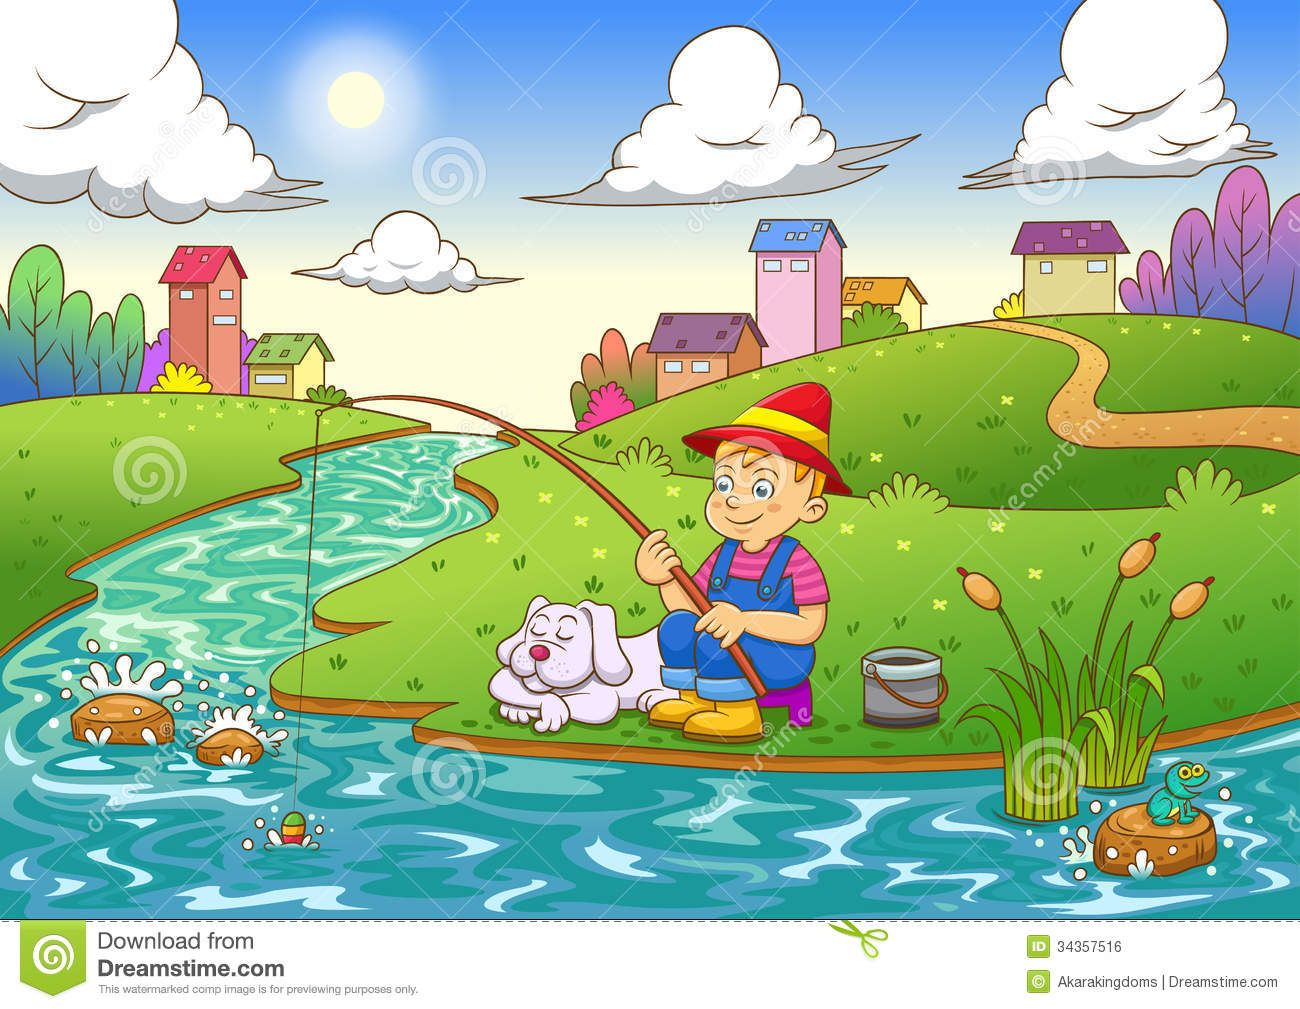 Swimming across the river clipart picture transparent fishing river clipart | grandpa minnow | Kids activity books ... picture transparent